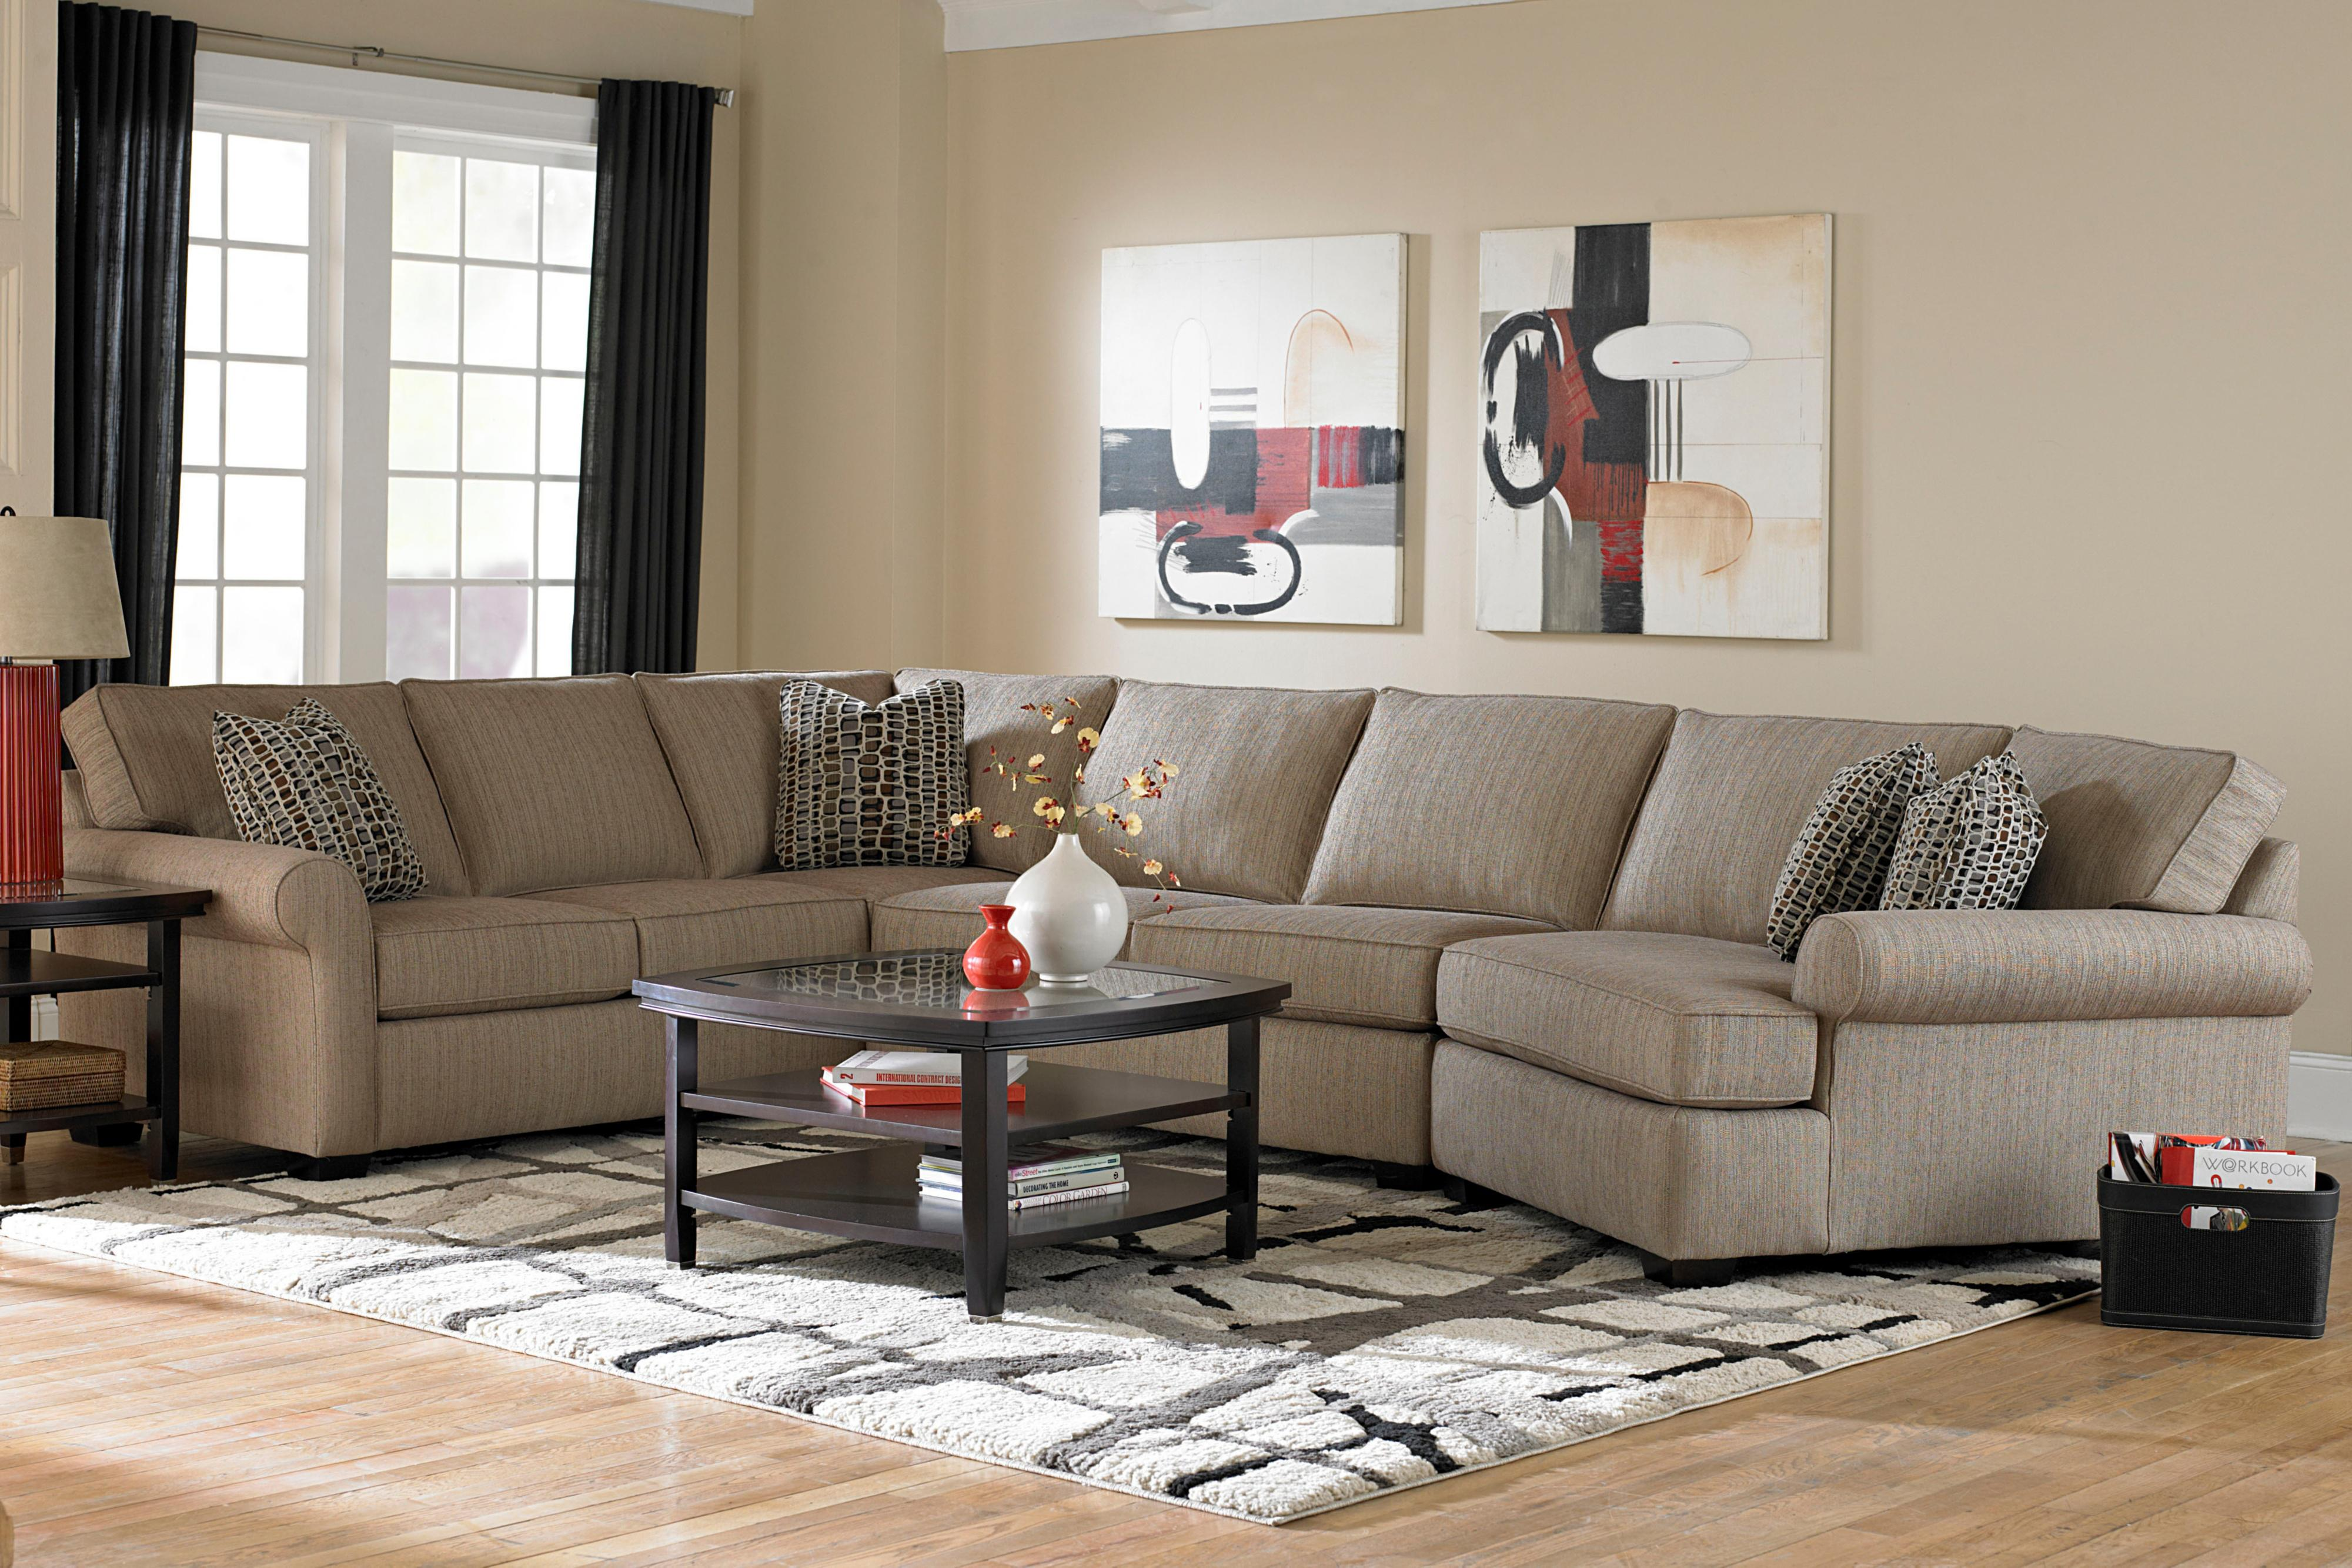 Broyhill Furniture Ethan Transitional Sectional Sofa With Right Facing  Cuddler Chair   AHFA   Sofa Sectional Dealer Locator